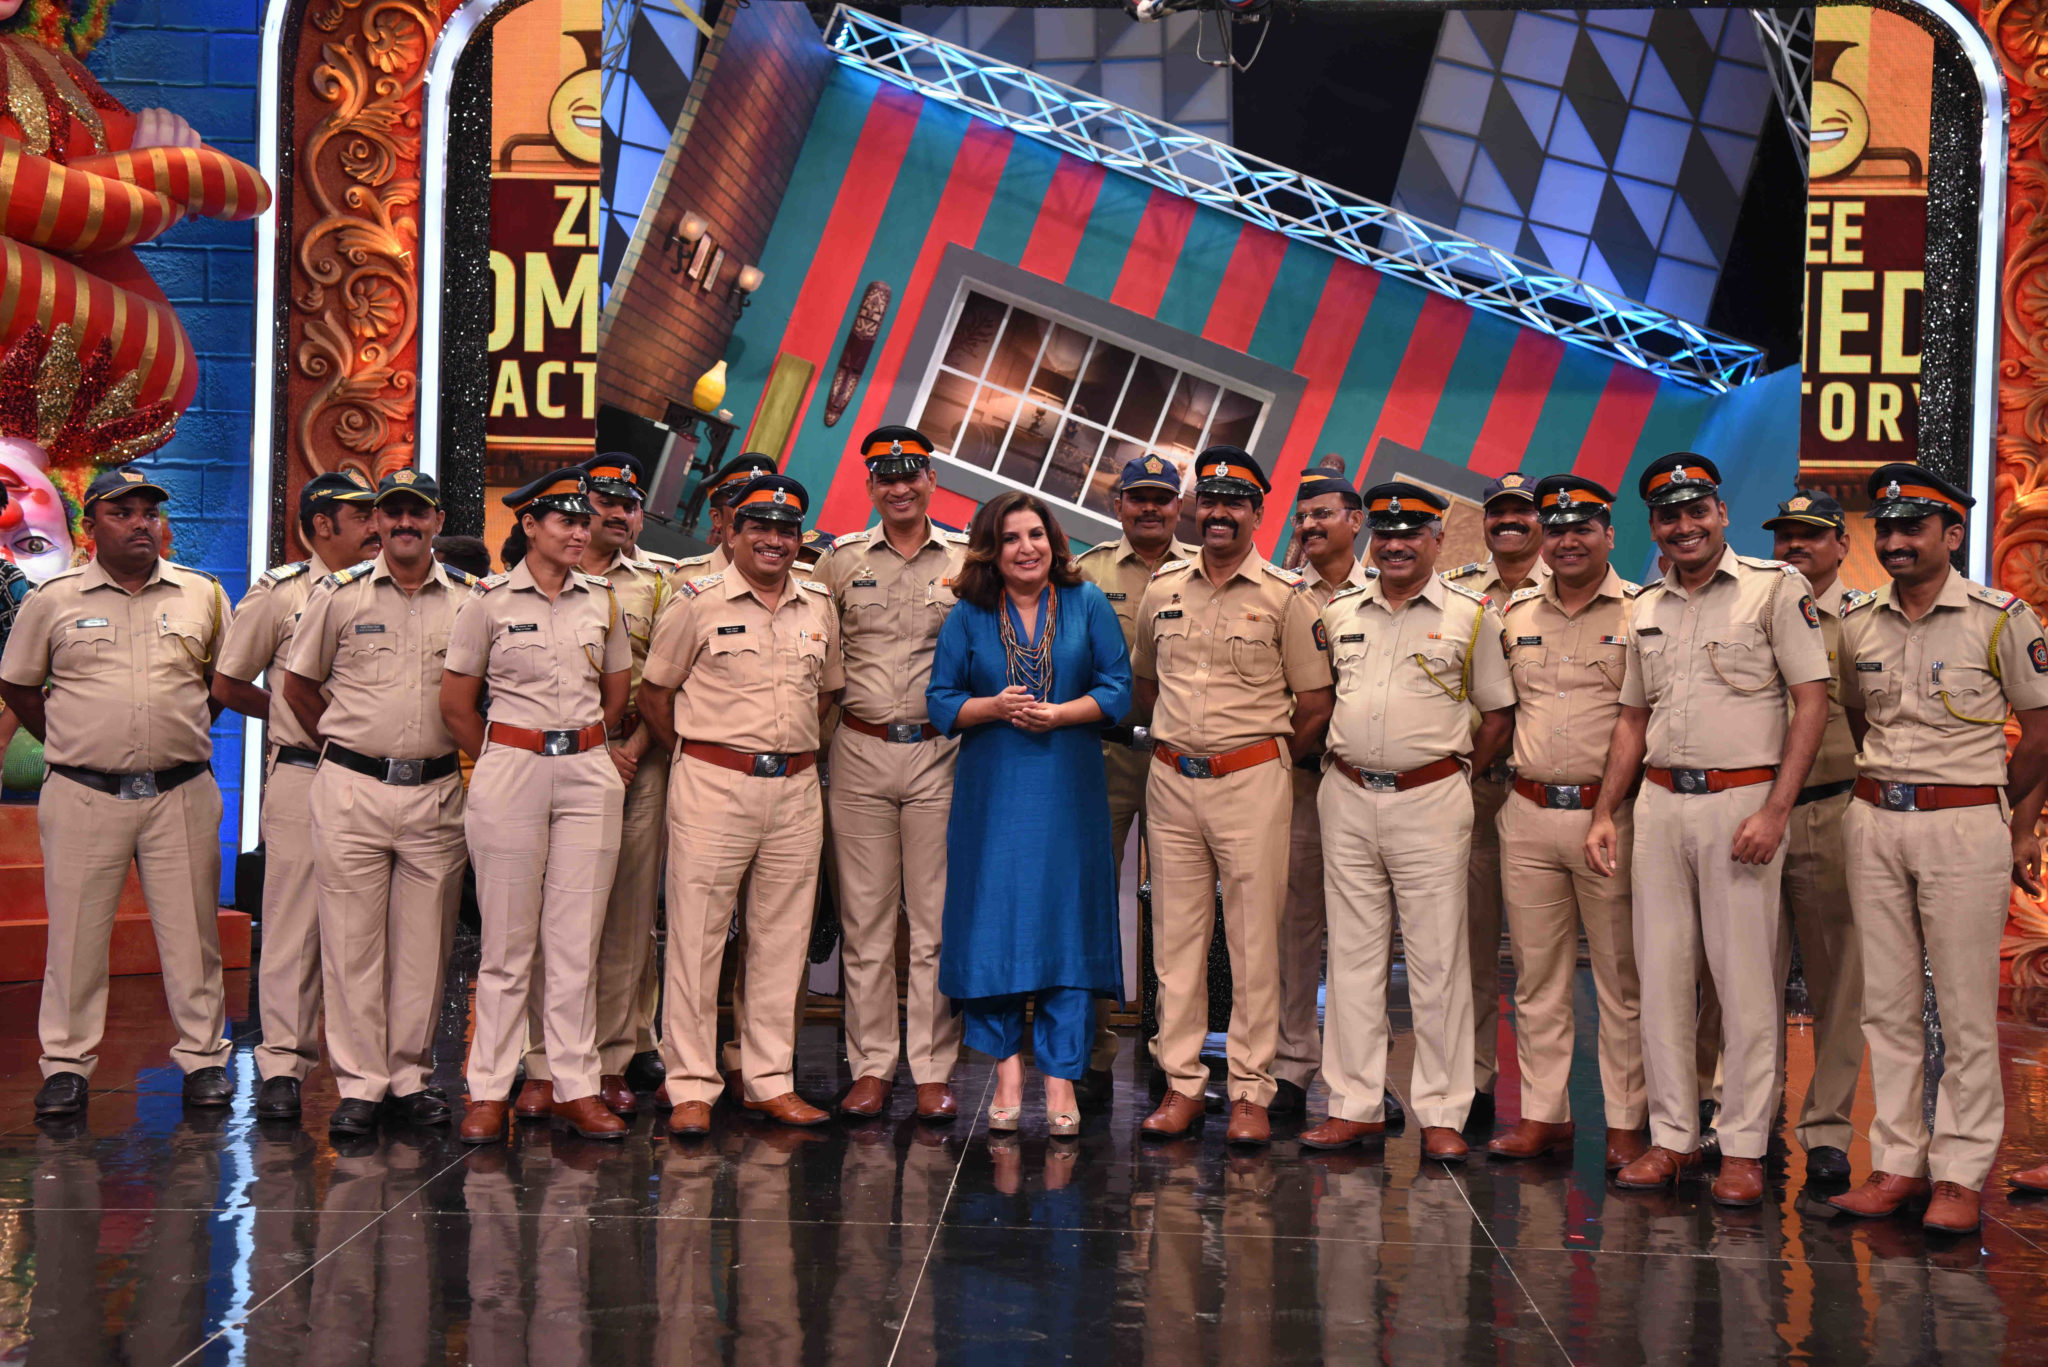 Farah-Khan-poses-with-the-Mumbai-Police-Force-who-visited-the-set-of-Zee-Comedy-Factory-scaled.jpg